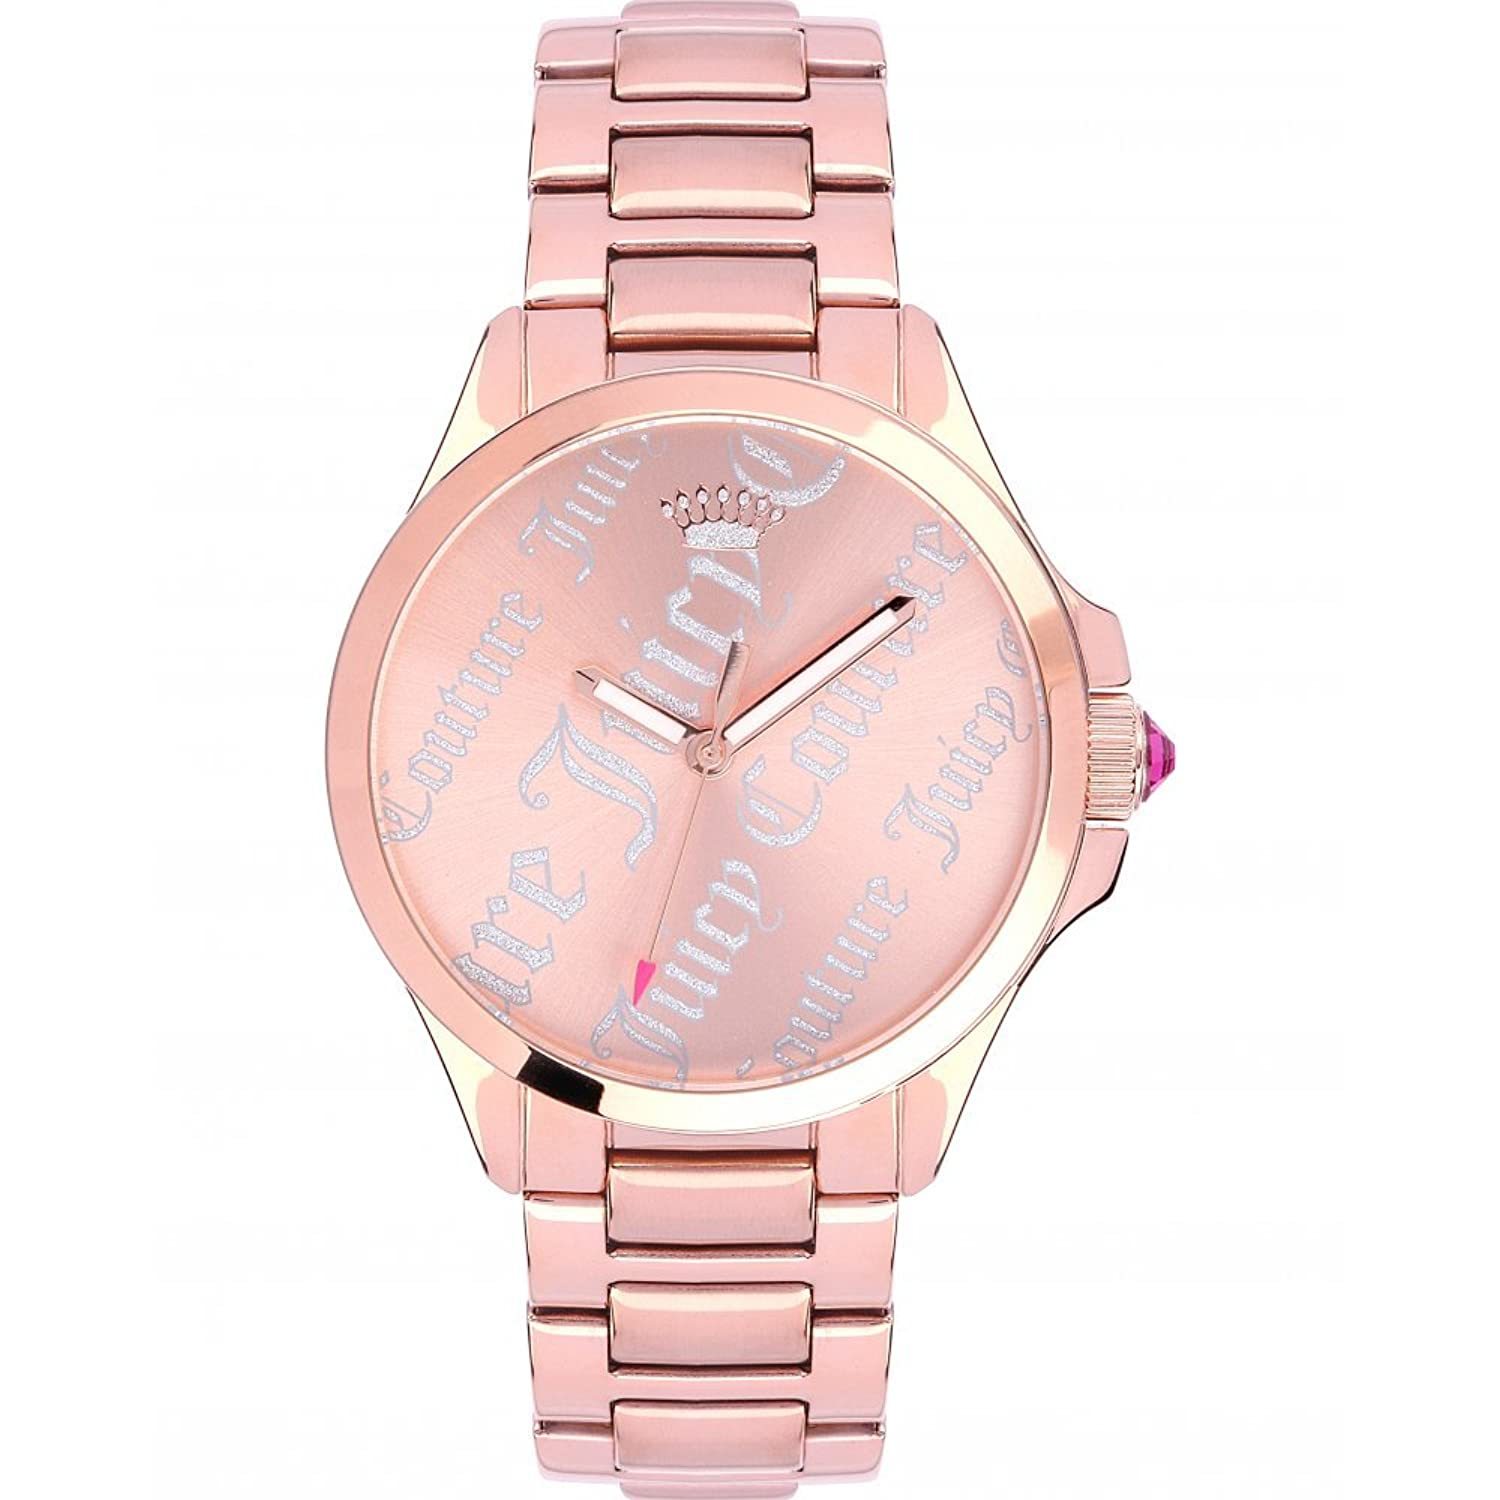 Women's Juicy Couture 1901278 Stainless Steel Watch